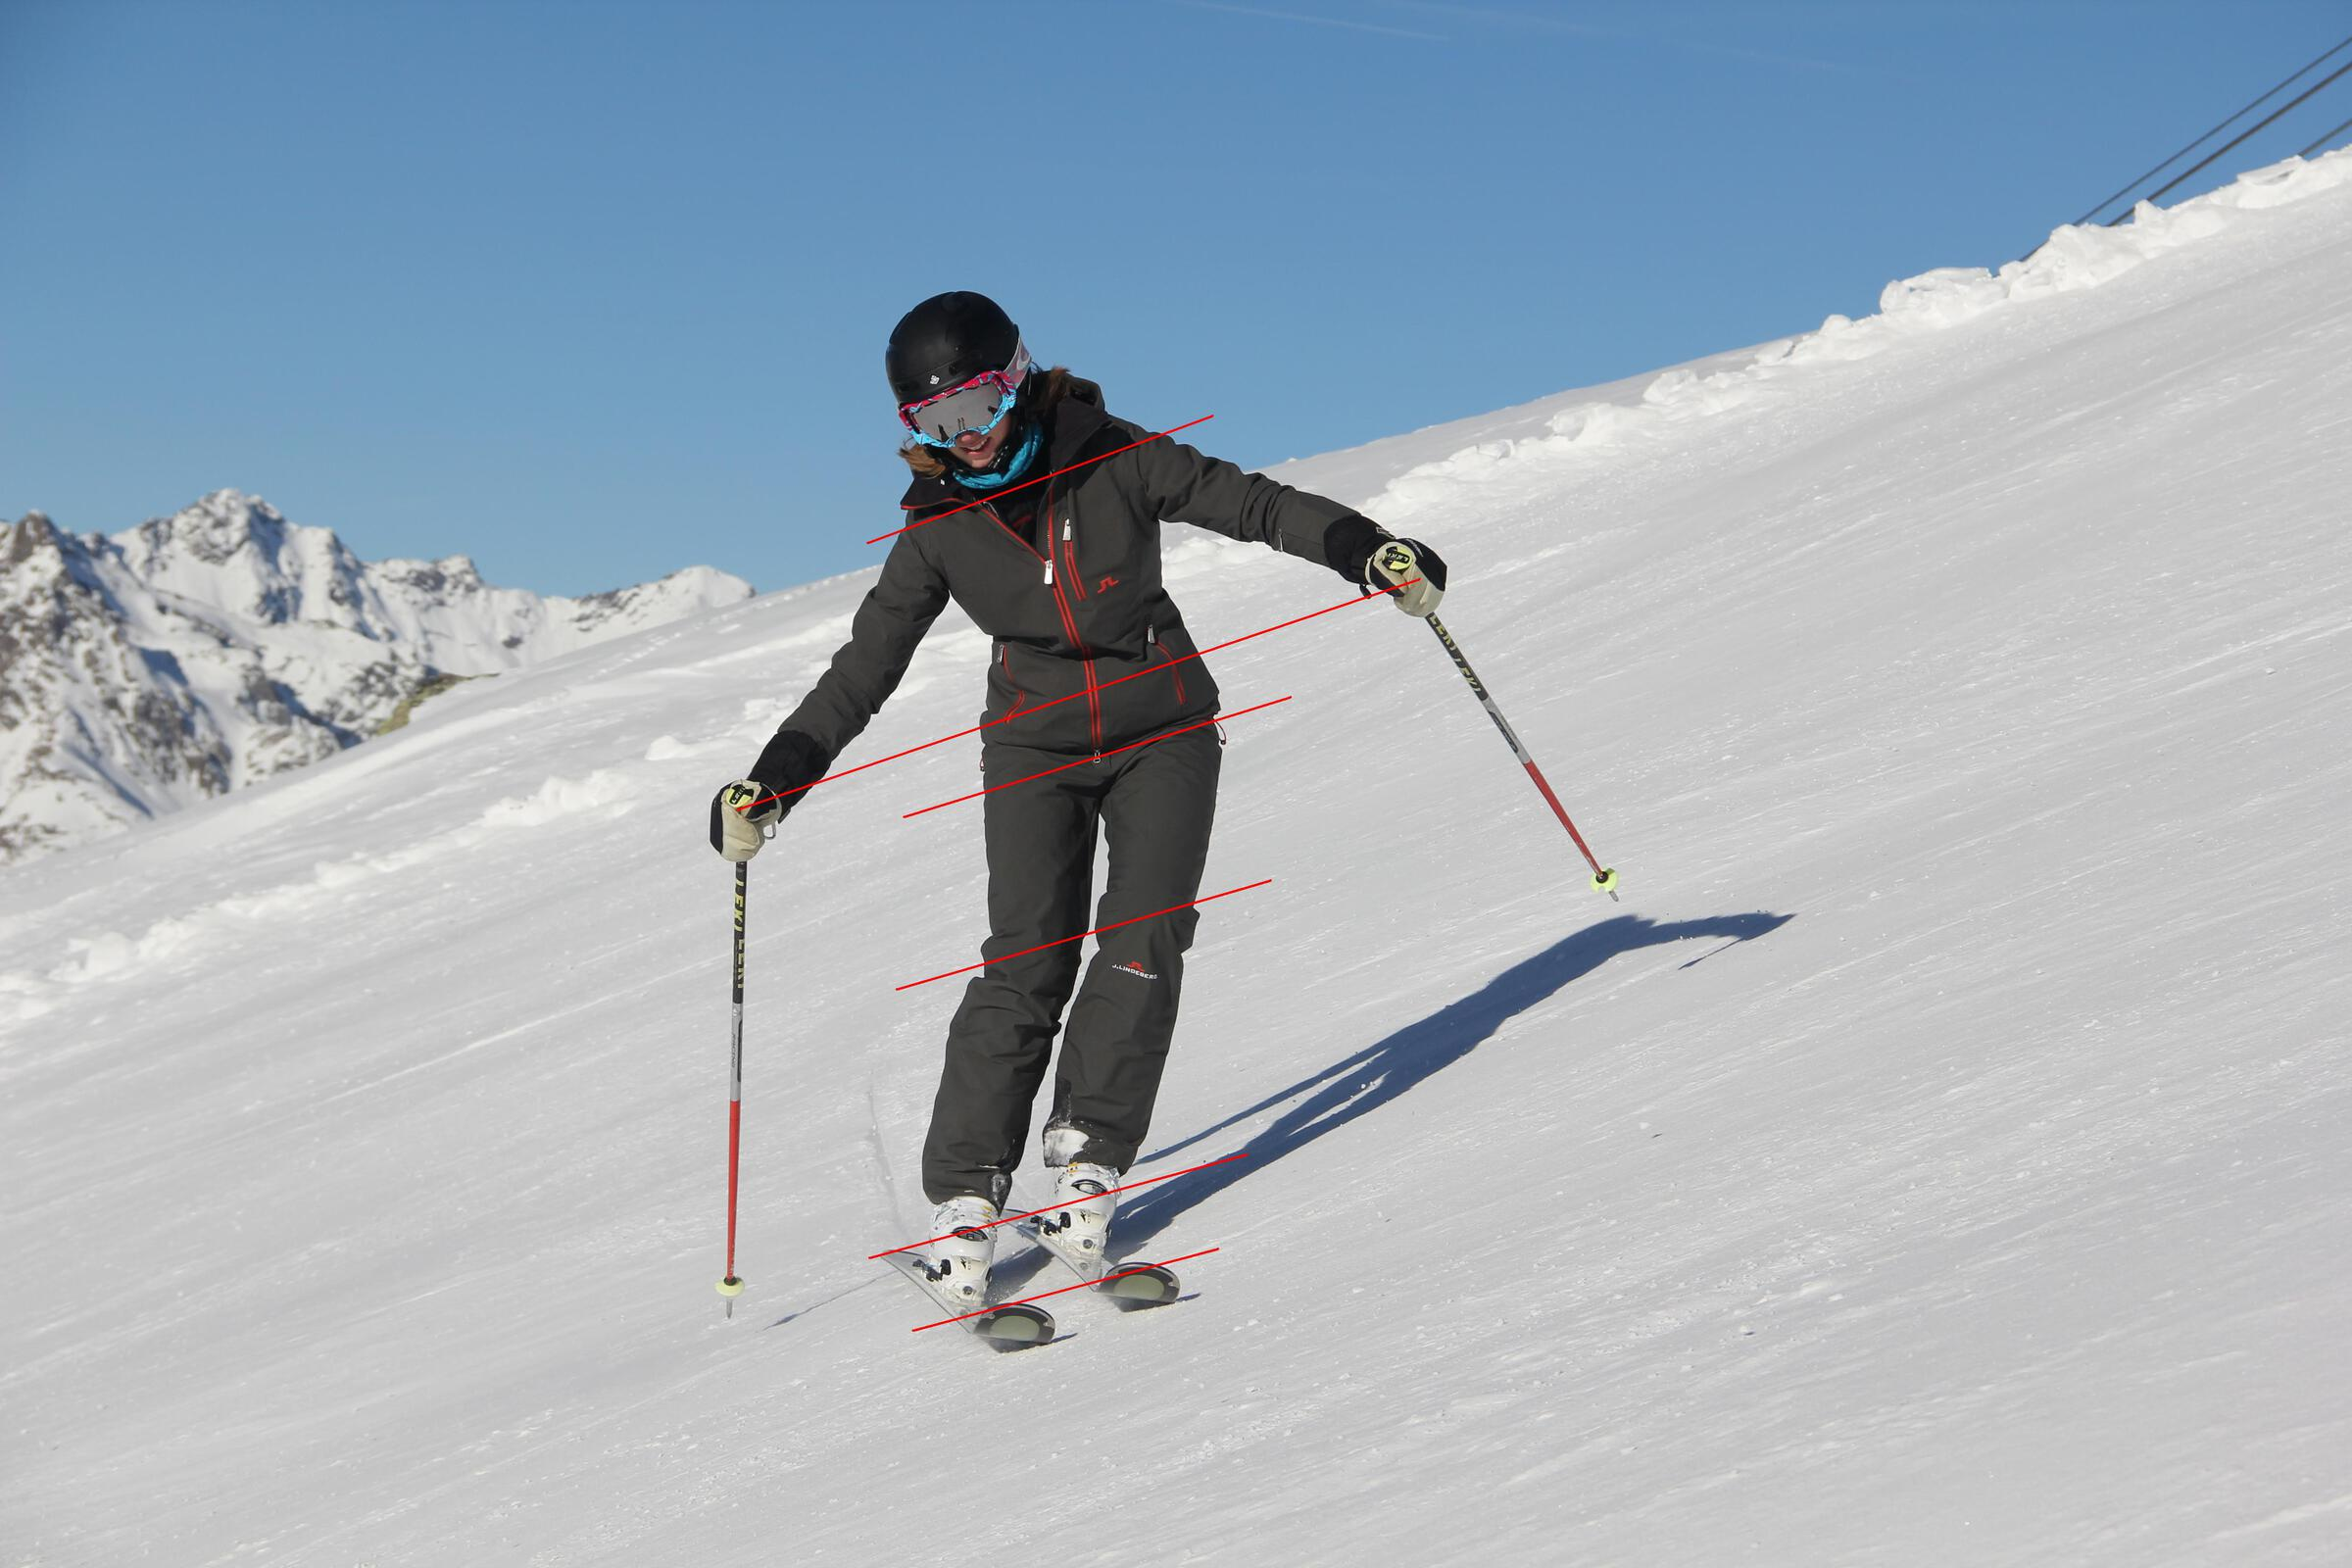 Margot is showing us the Alpine Basic Position